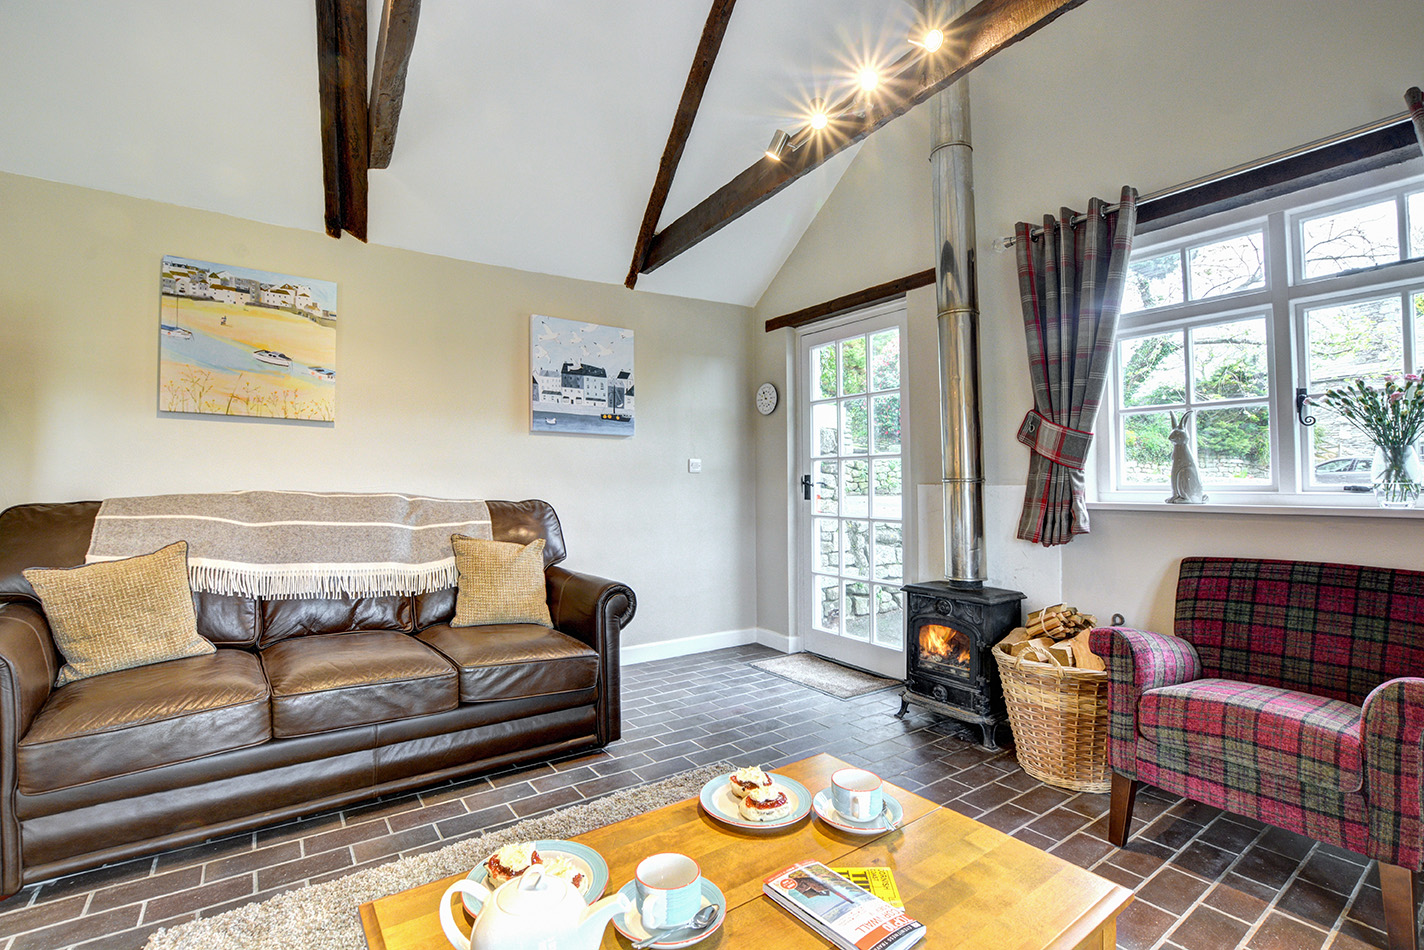 The lounge area of The Linney self catering cottage converted barn at Penrose Burden holiday cottages in Cornwall.jpg